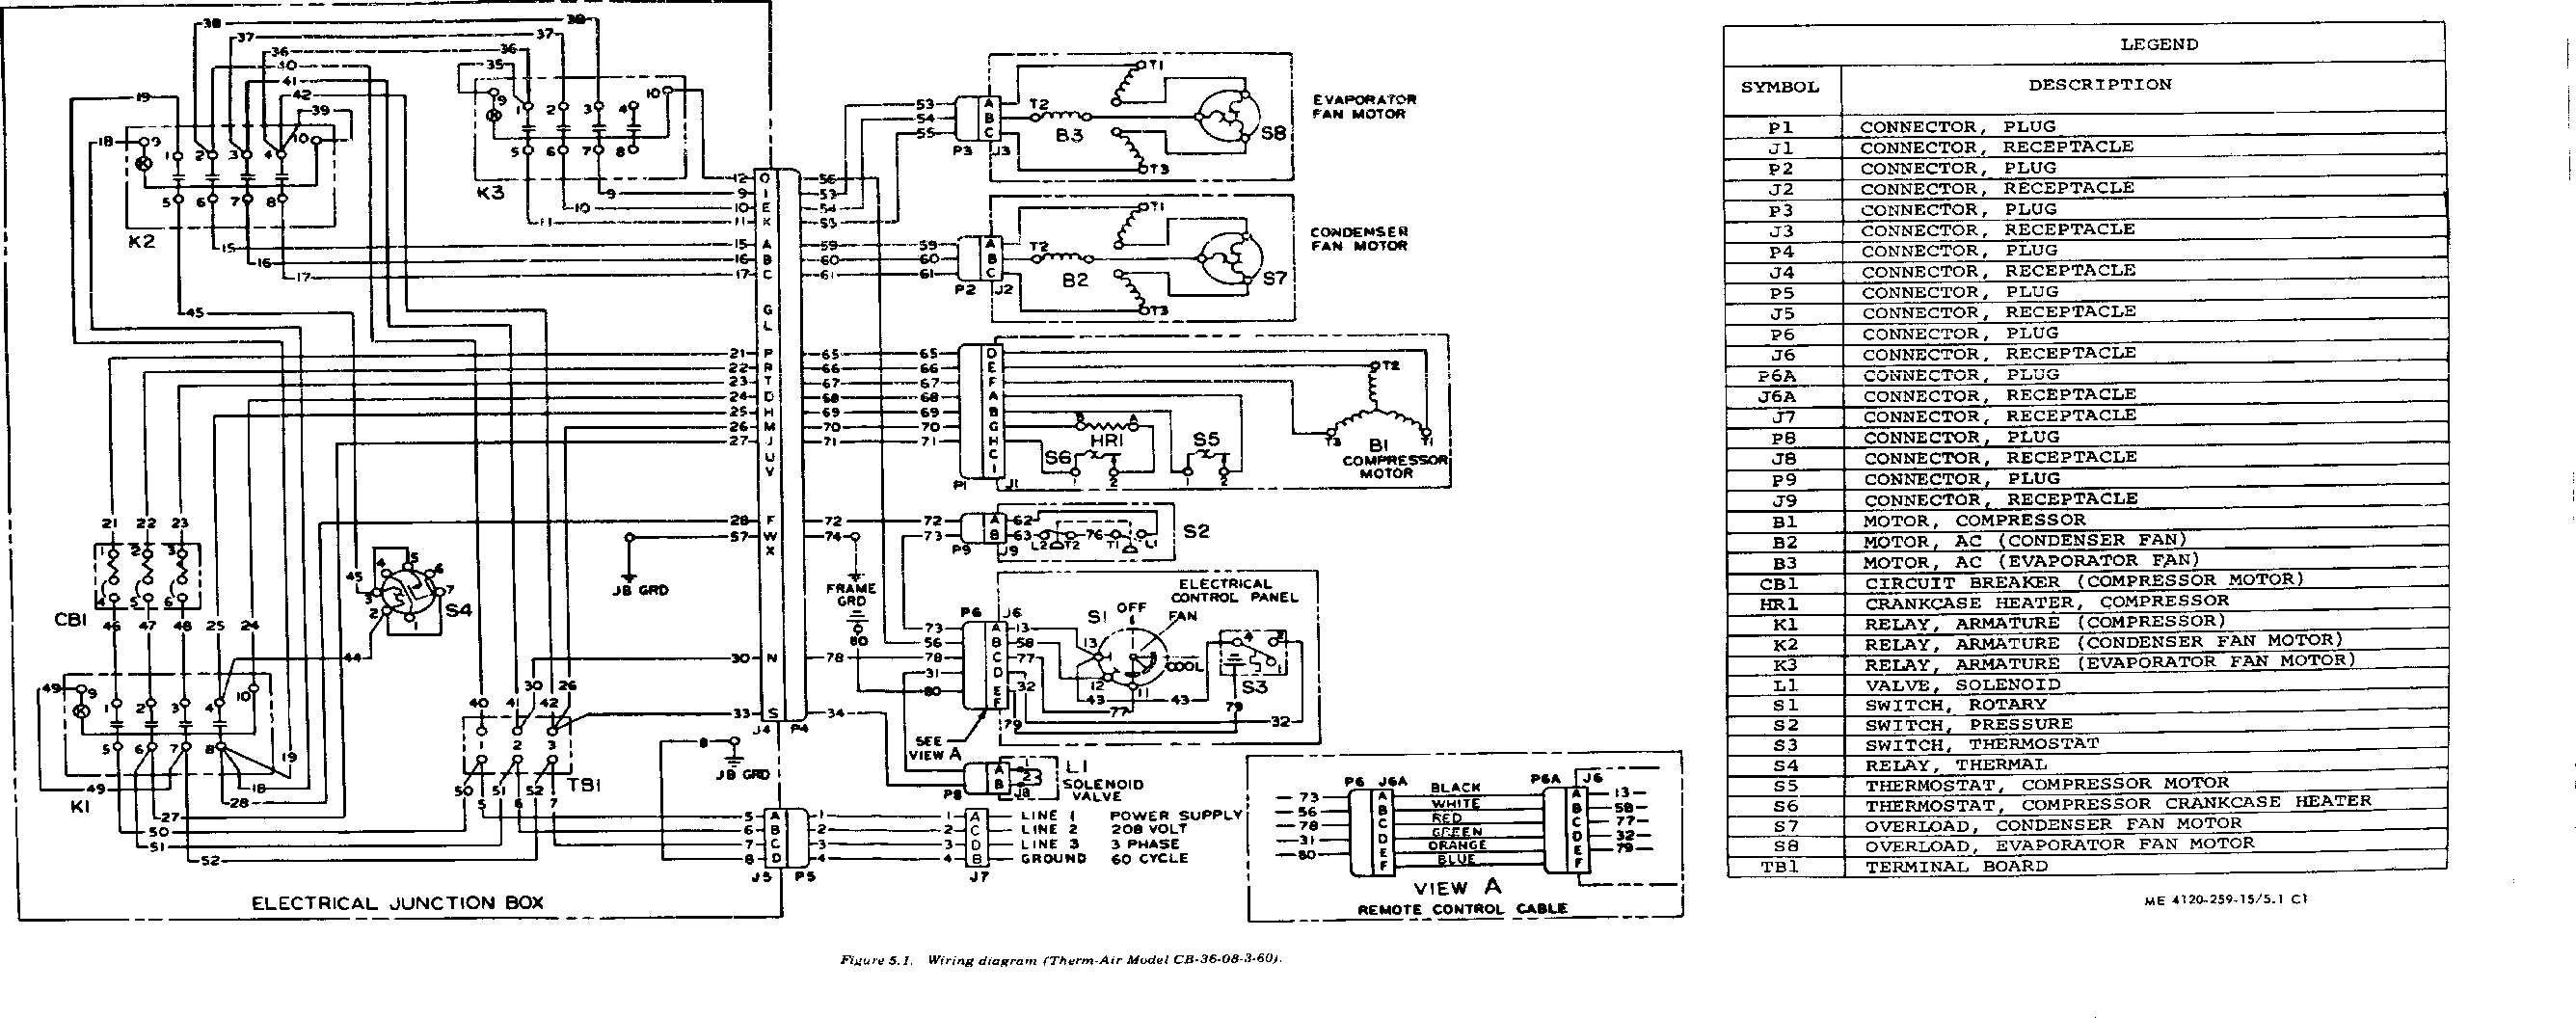 Unique Read Automotive Wiring Diagram diagramsample